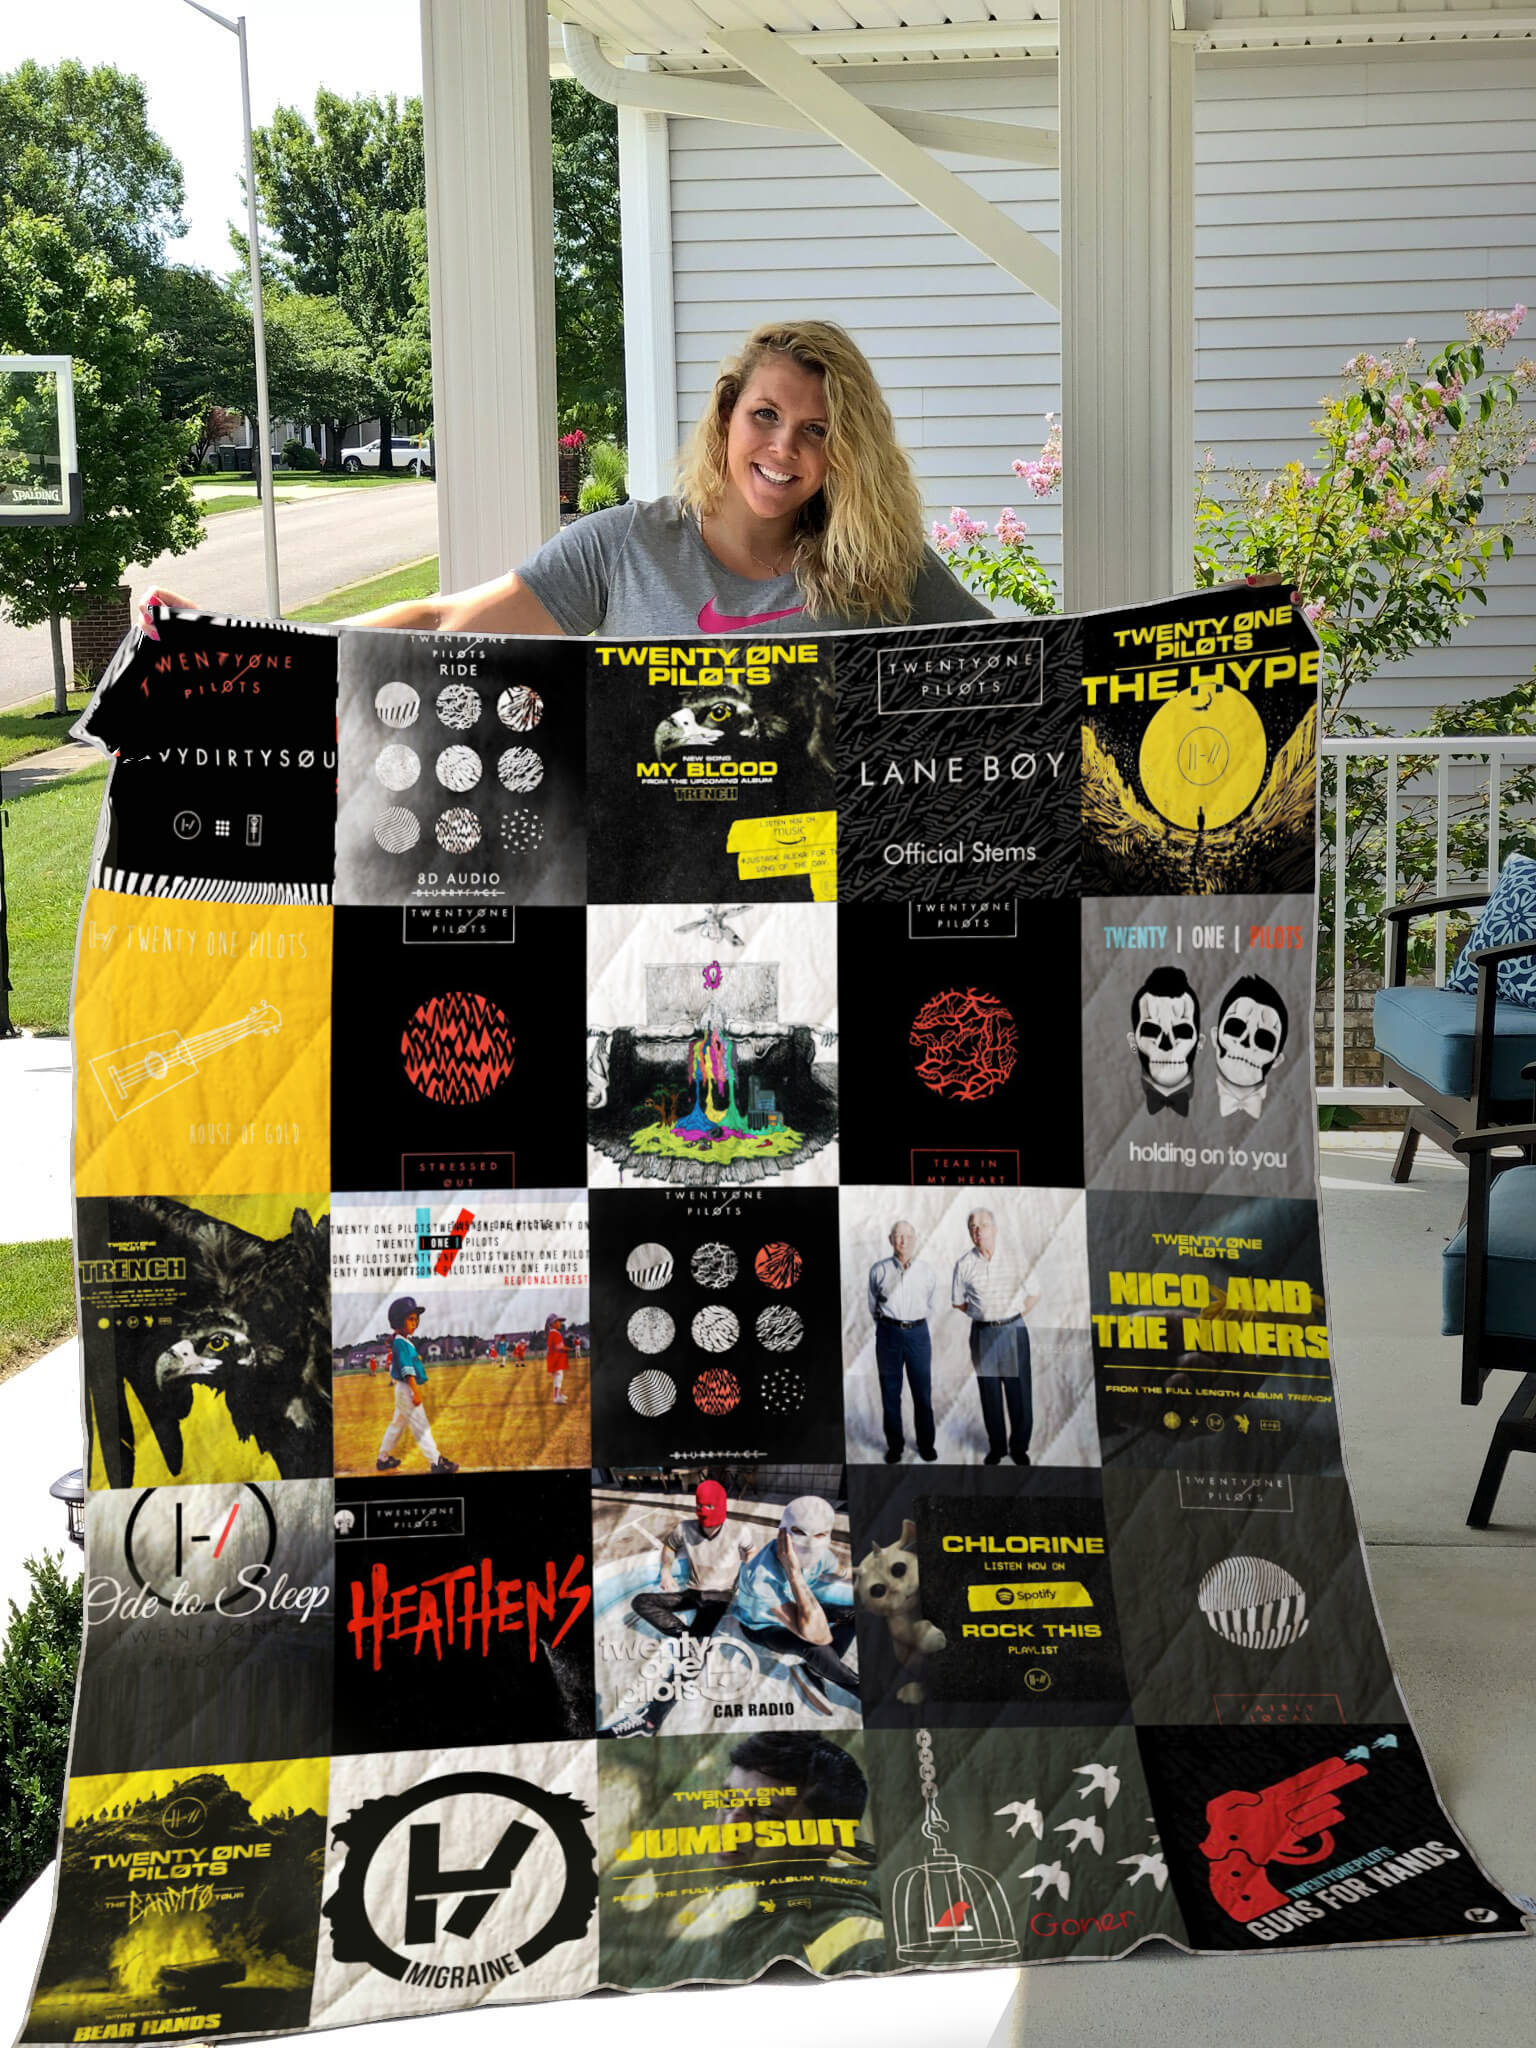 Twenty One Pilots Albums Quilt Blanket For Fans Ver 25 Groveblankets